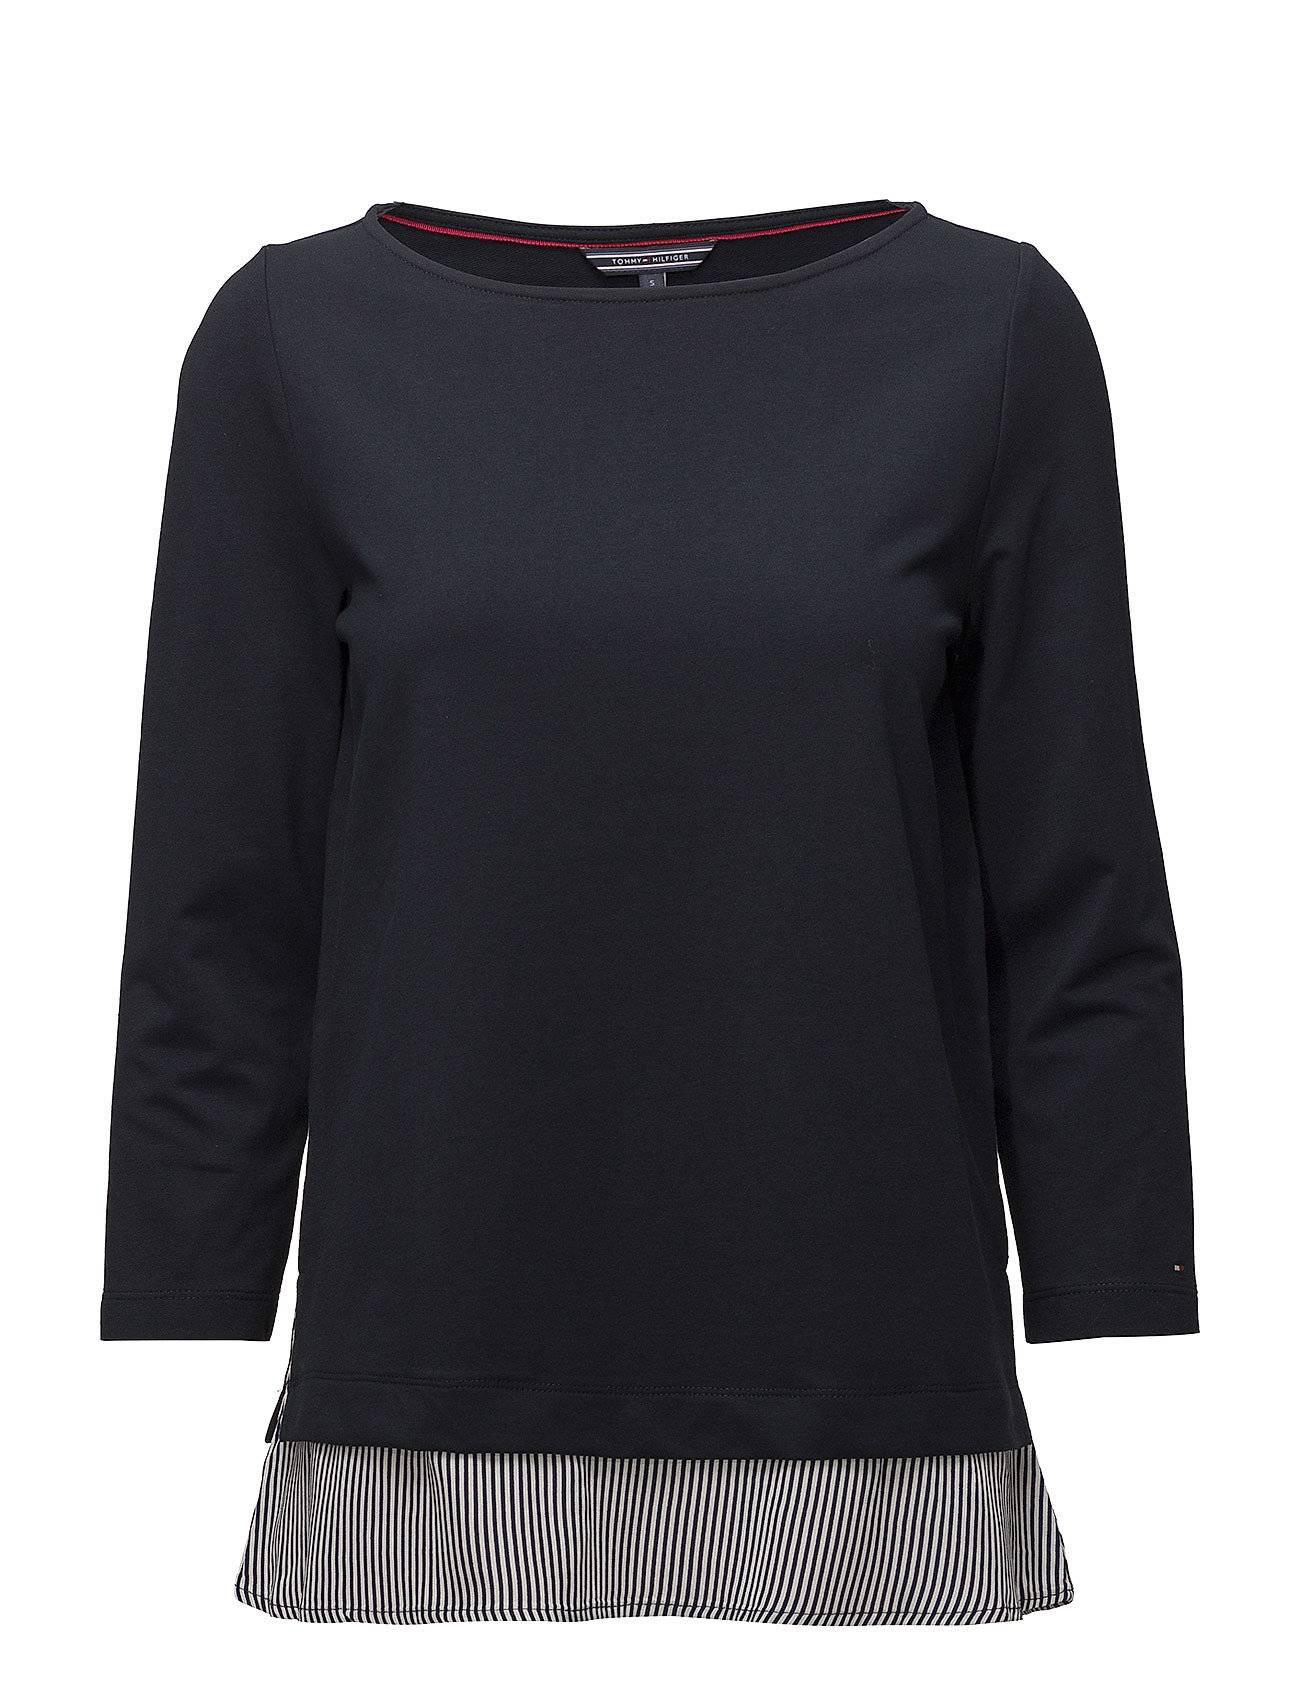 Tommy Hilfiger Angie Boat Nk Top 3/